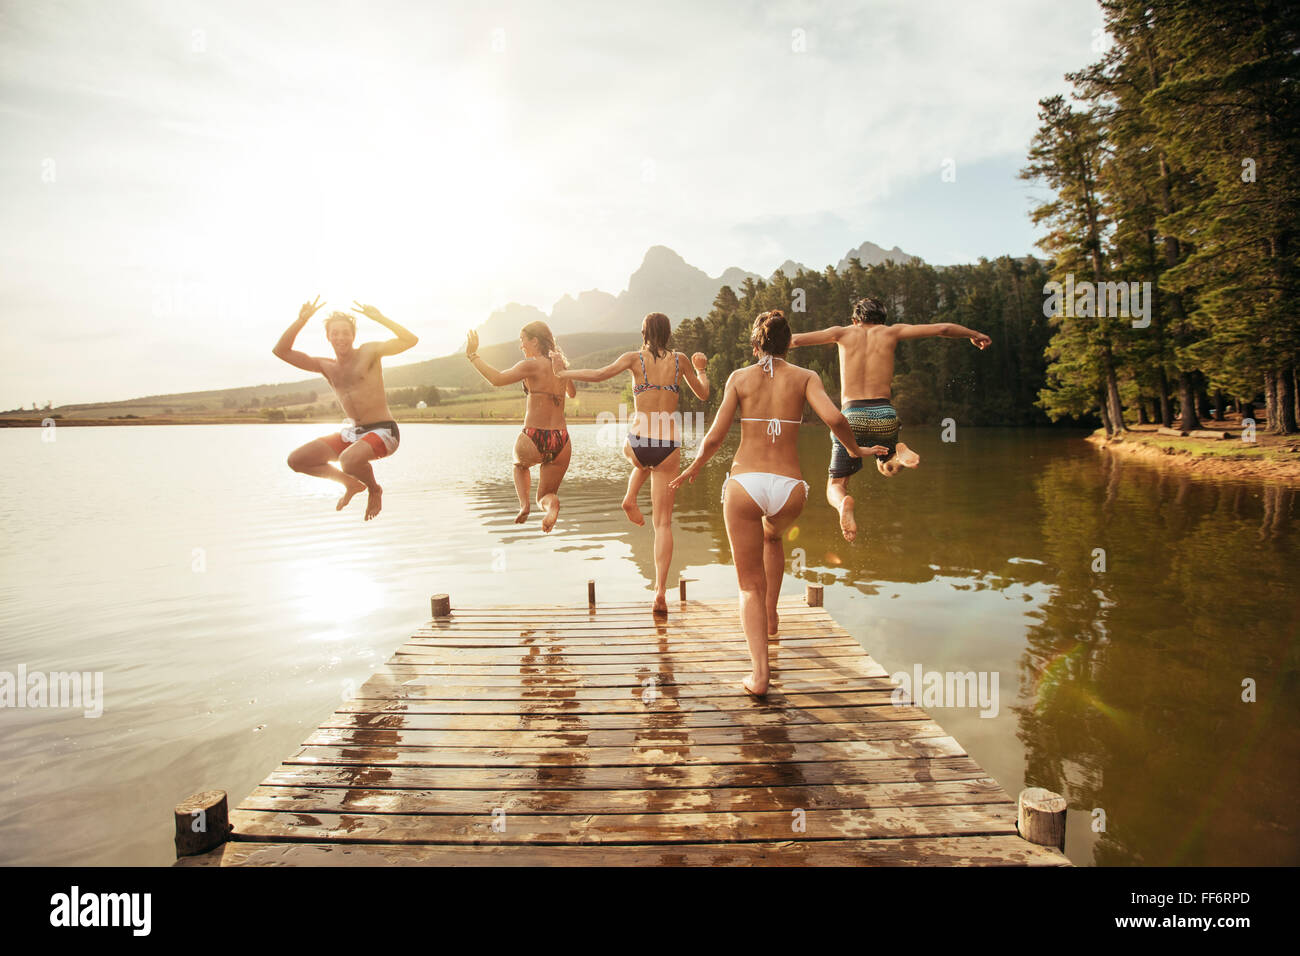 Rear view portrait of young friends jumping into a lake. Young people running and jumping from a jetty in to a lake - Stock Image